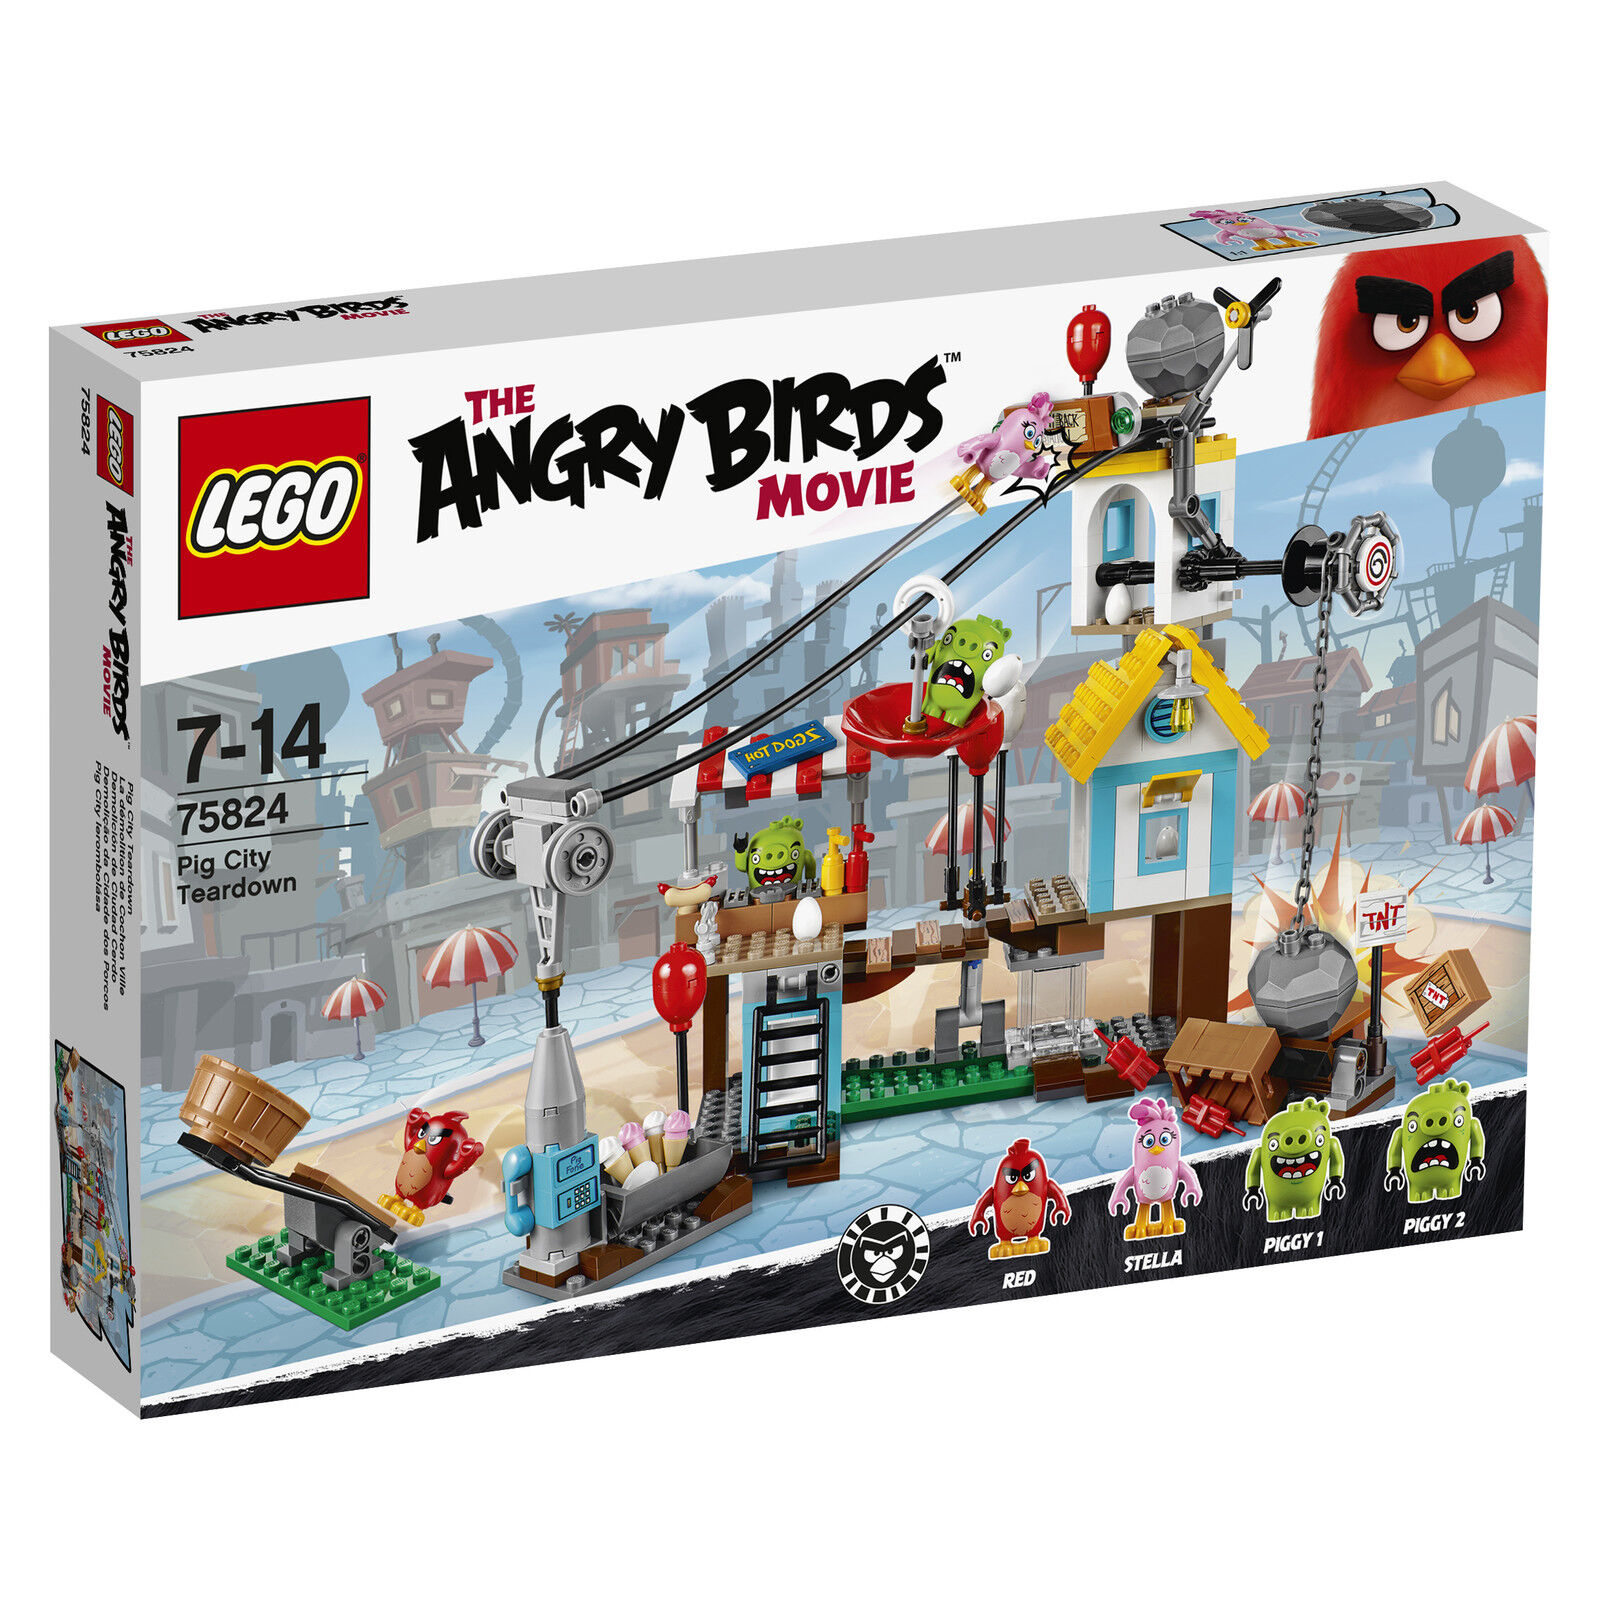 LEGO ® the Angry Birds ™ Movie 75824 Pig città  Teardown NUOVO OVP nuovo MISB NRFB  risposta prima volta